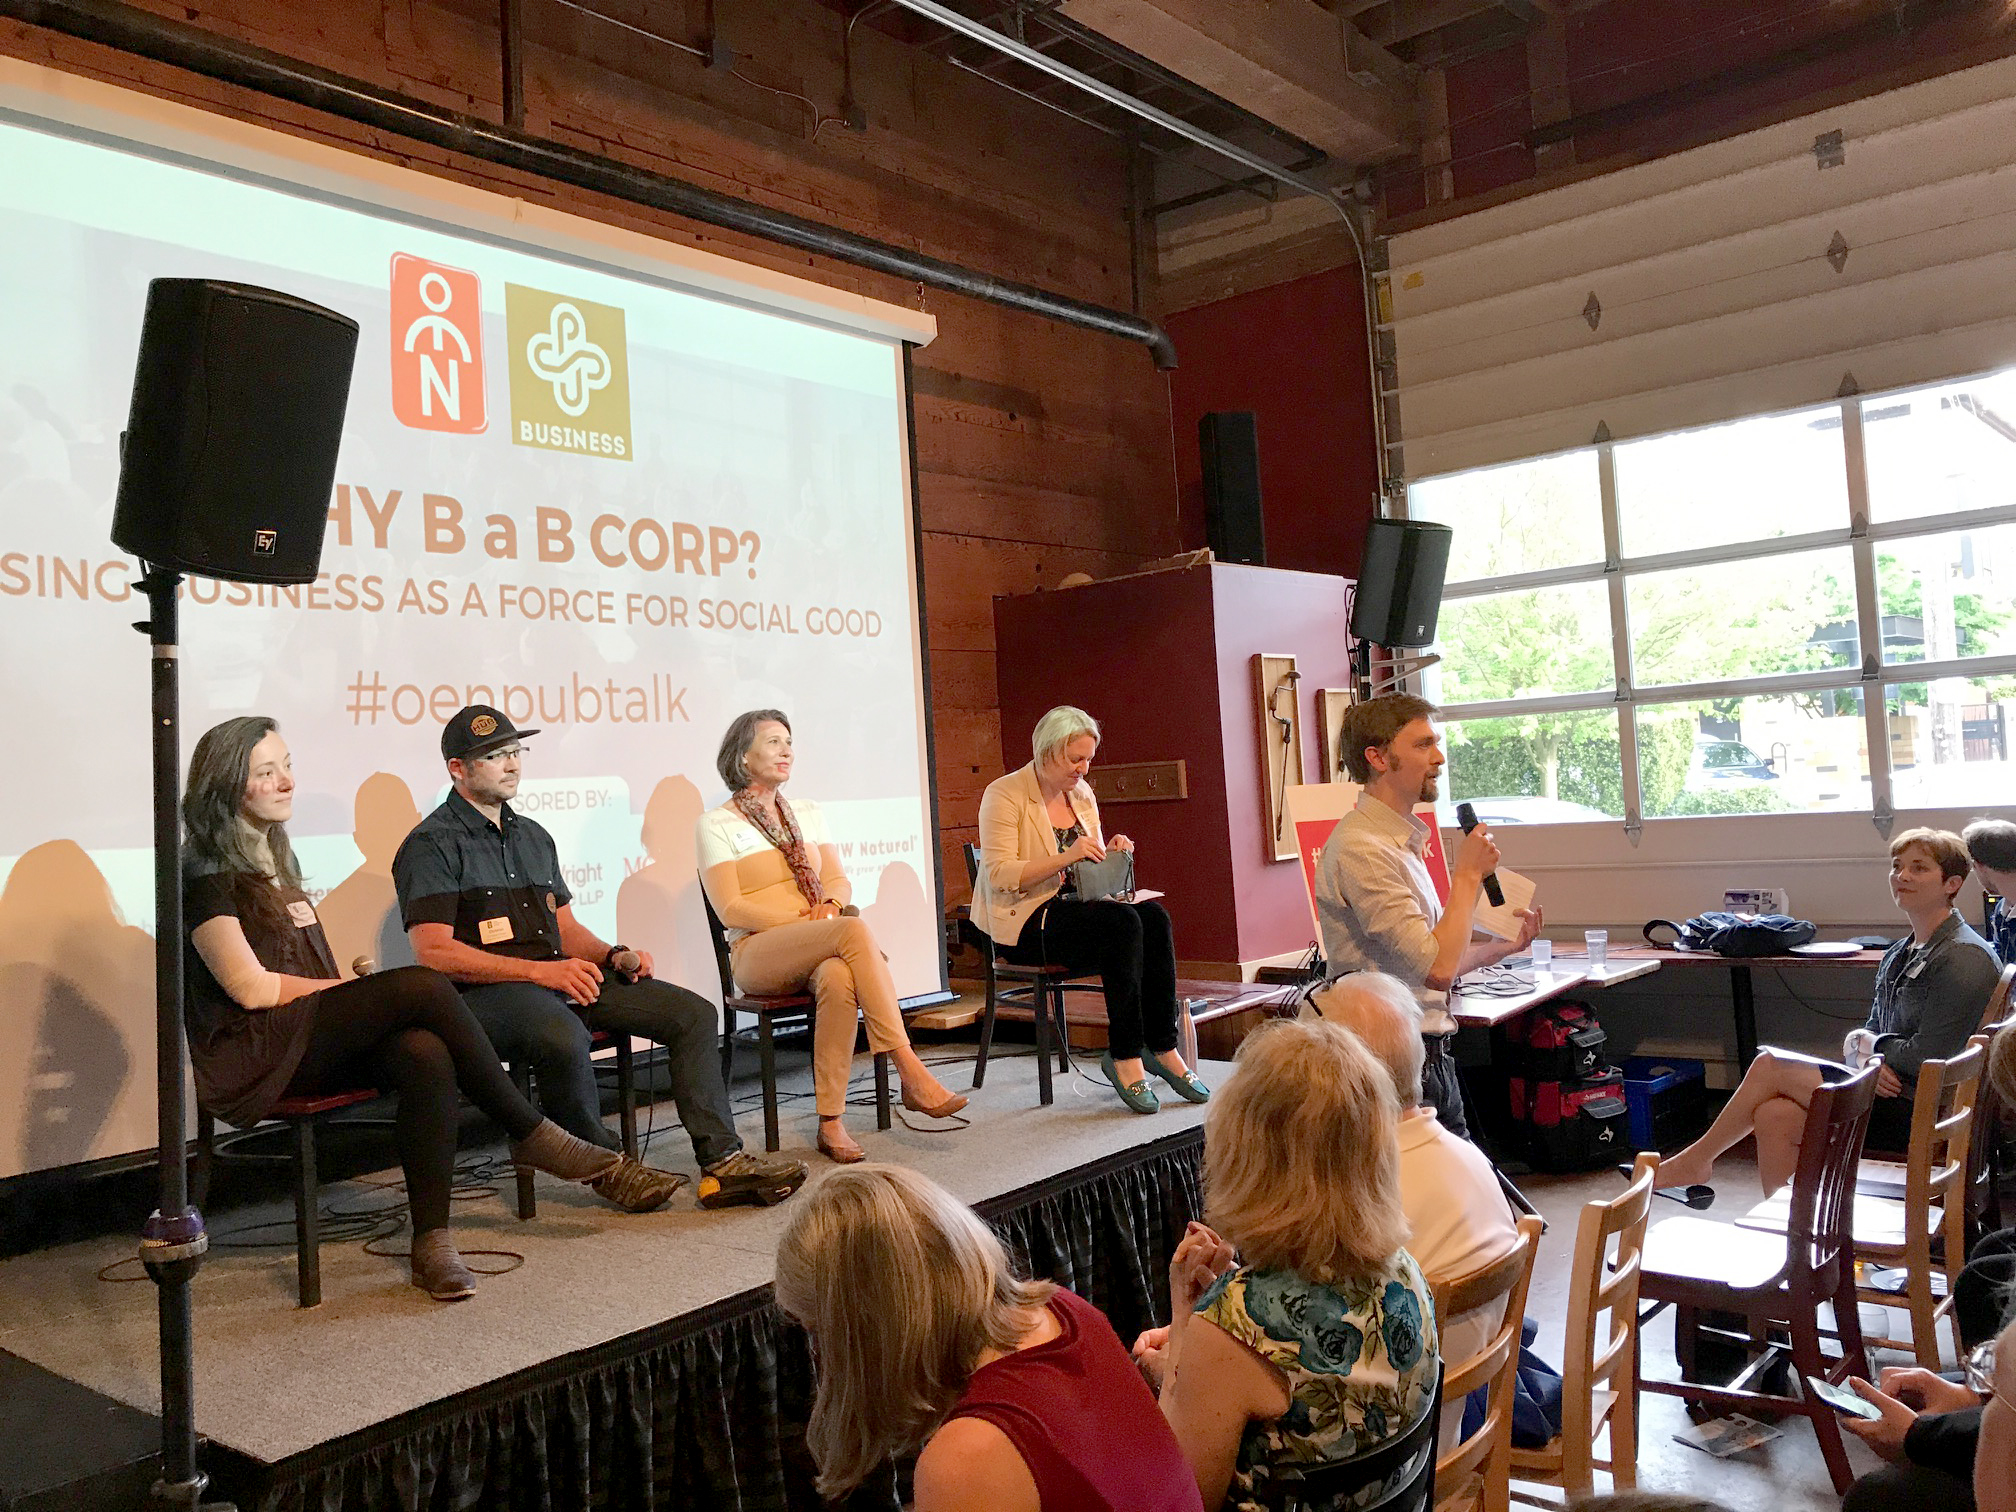 Panelists at the B Corp Pubtalk